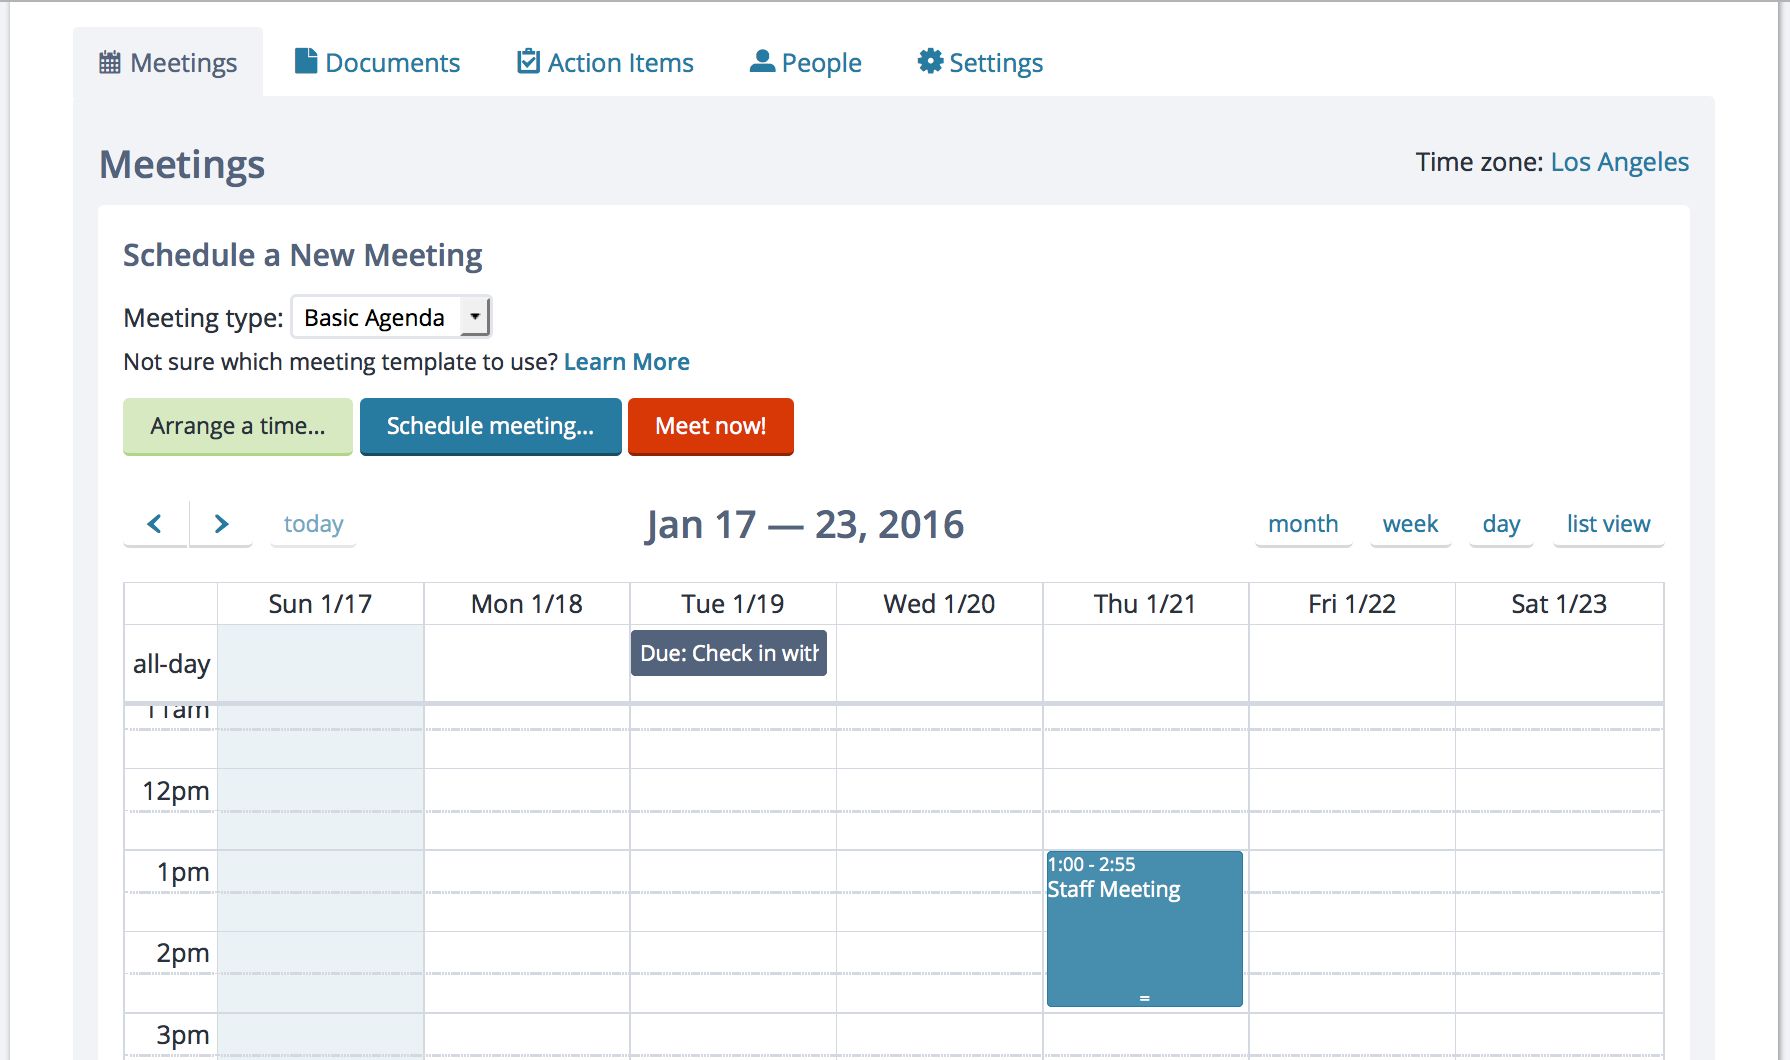 Week view of the calendar with action items and meetings